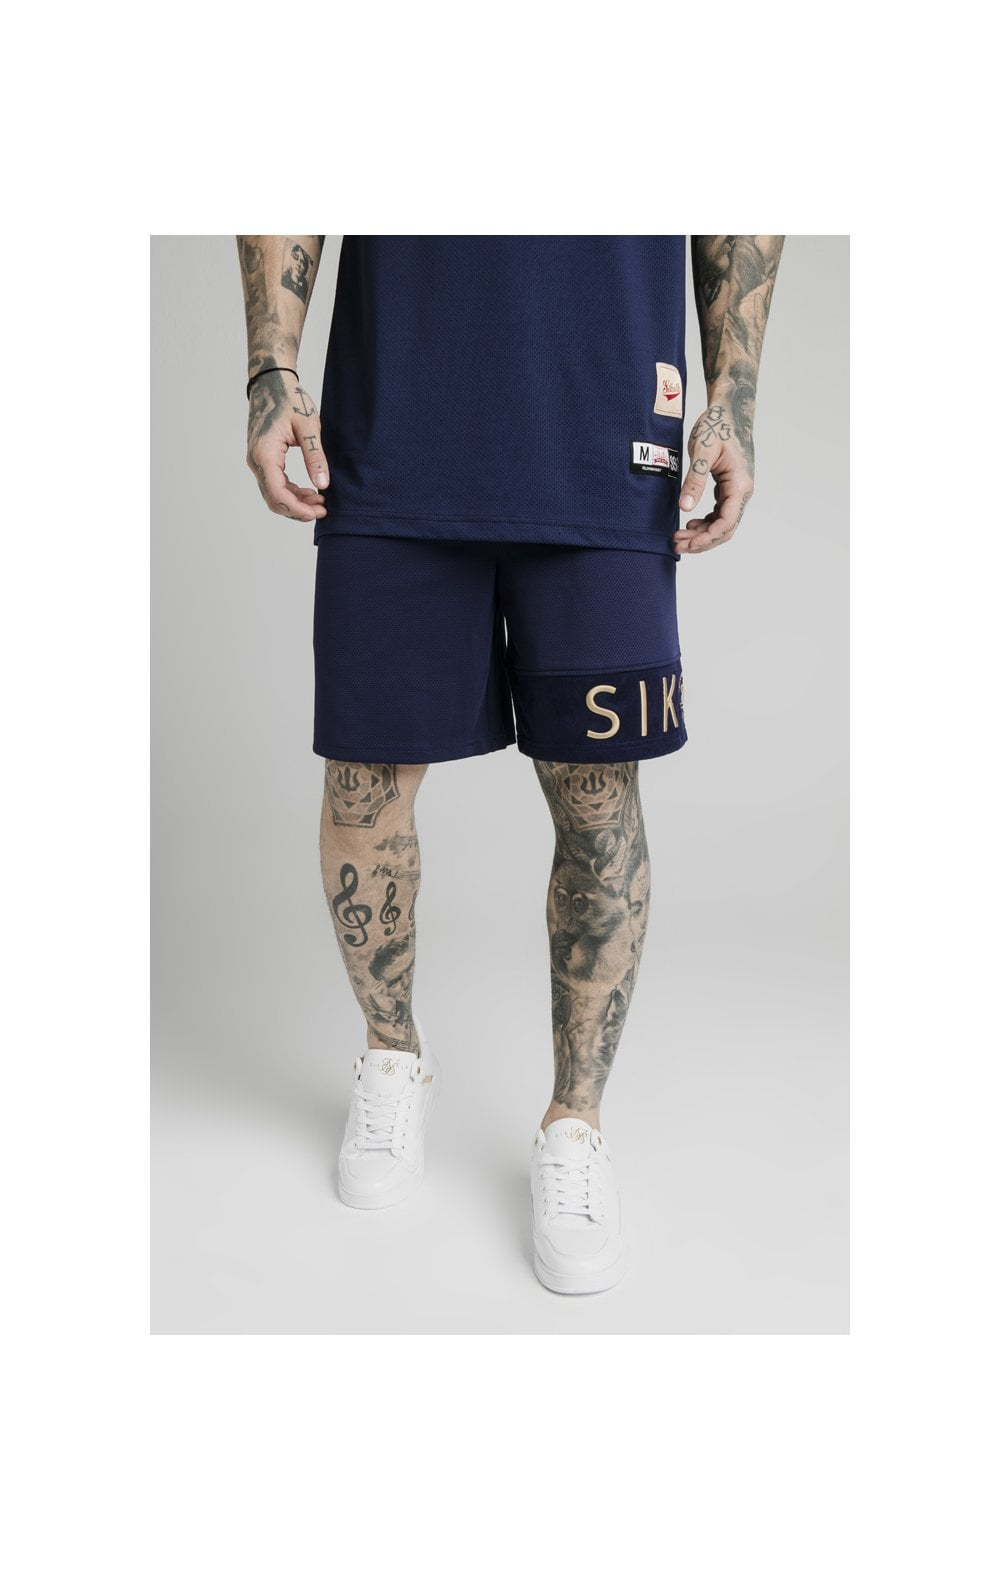 SikSilk Eyelet Panel Relaxed Fit Shorts - Navy Eclipse (1)